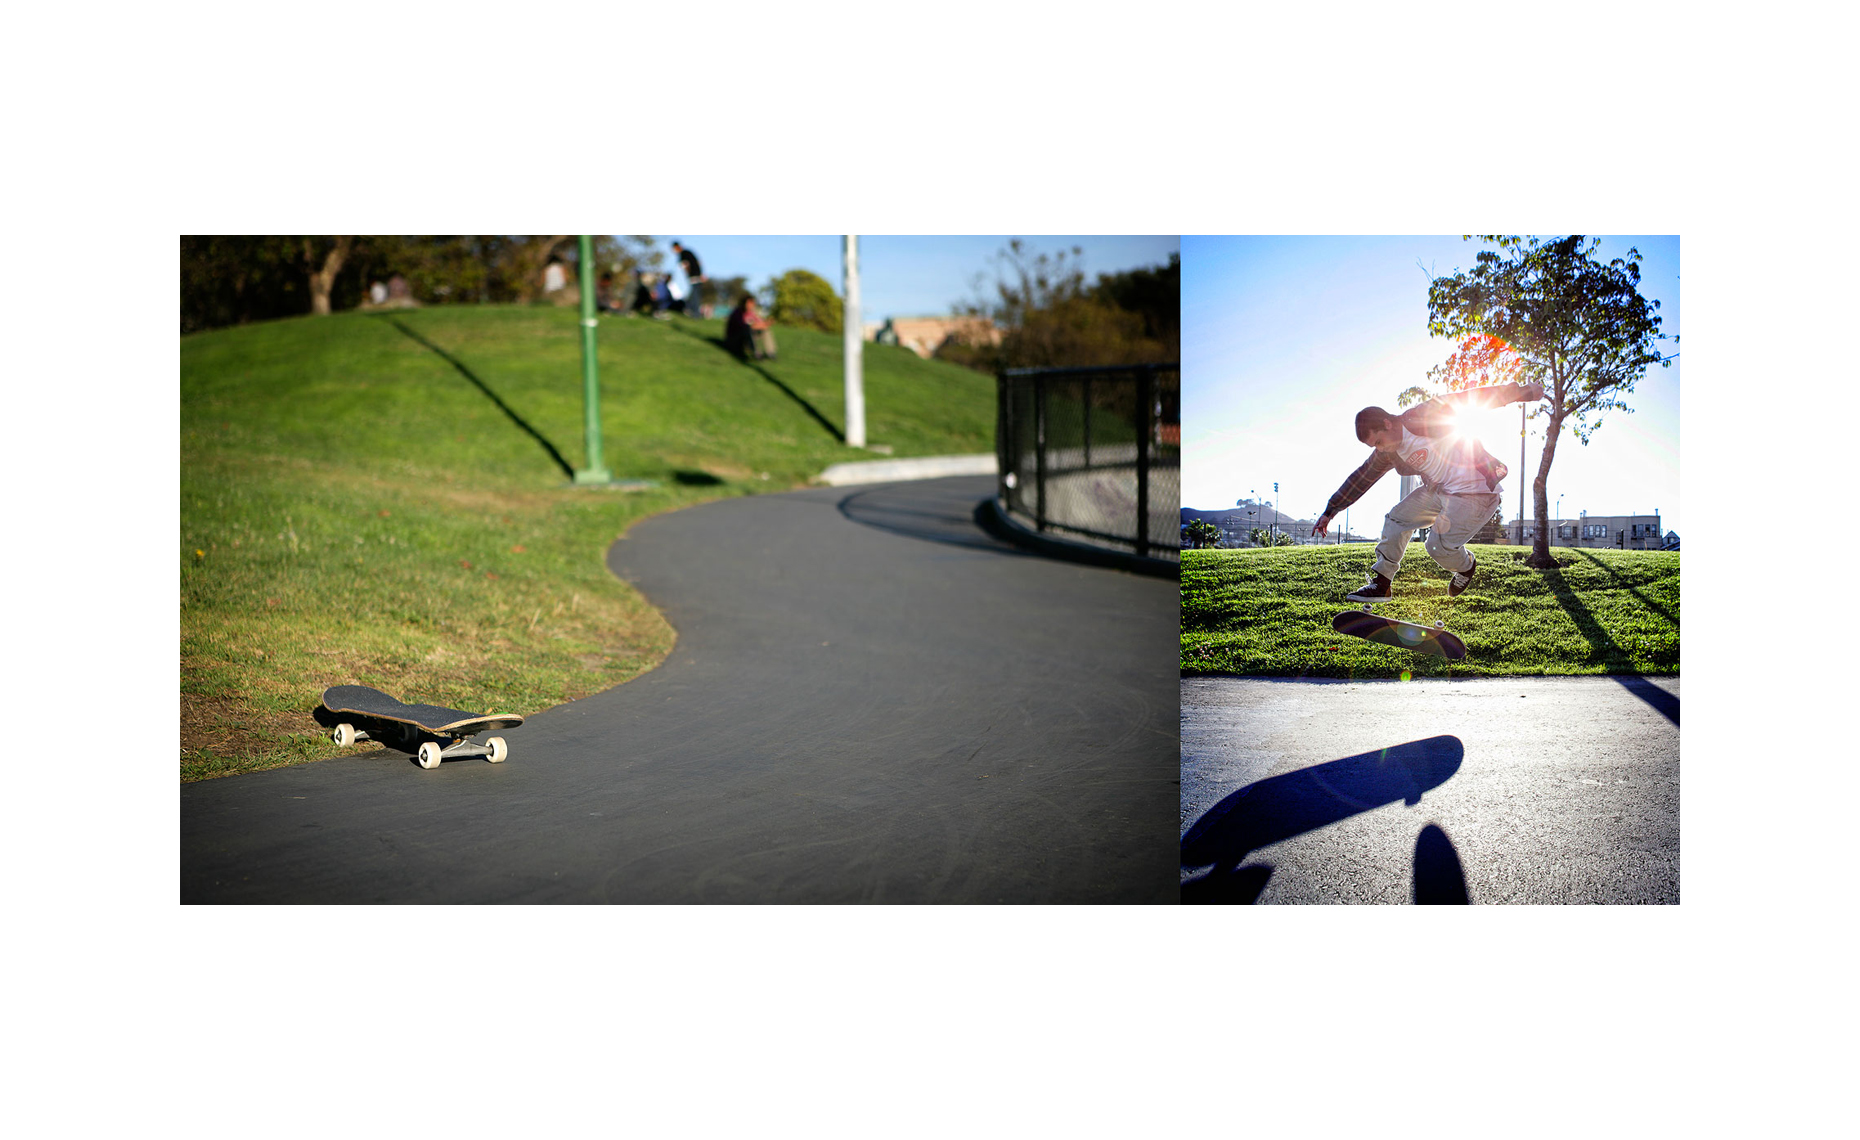 Skateboarding | Neil Fraser Photography | Neil Fraser Photographer